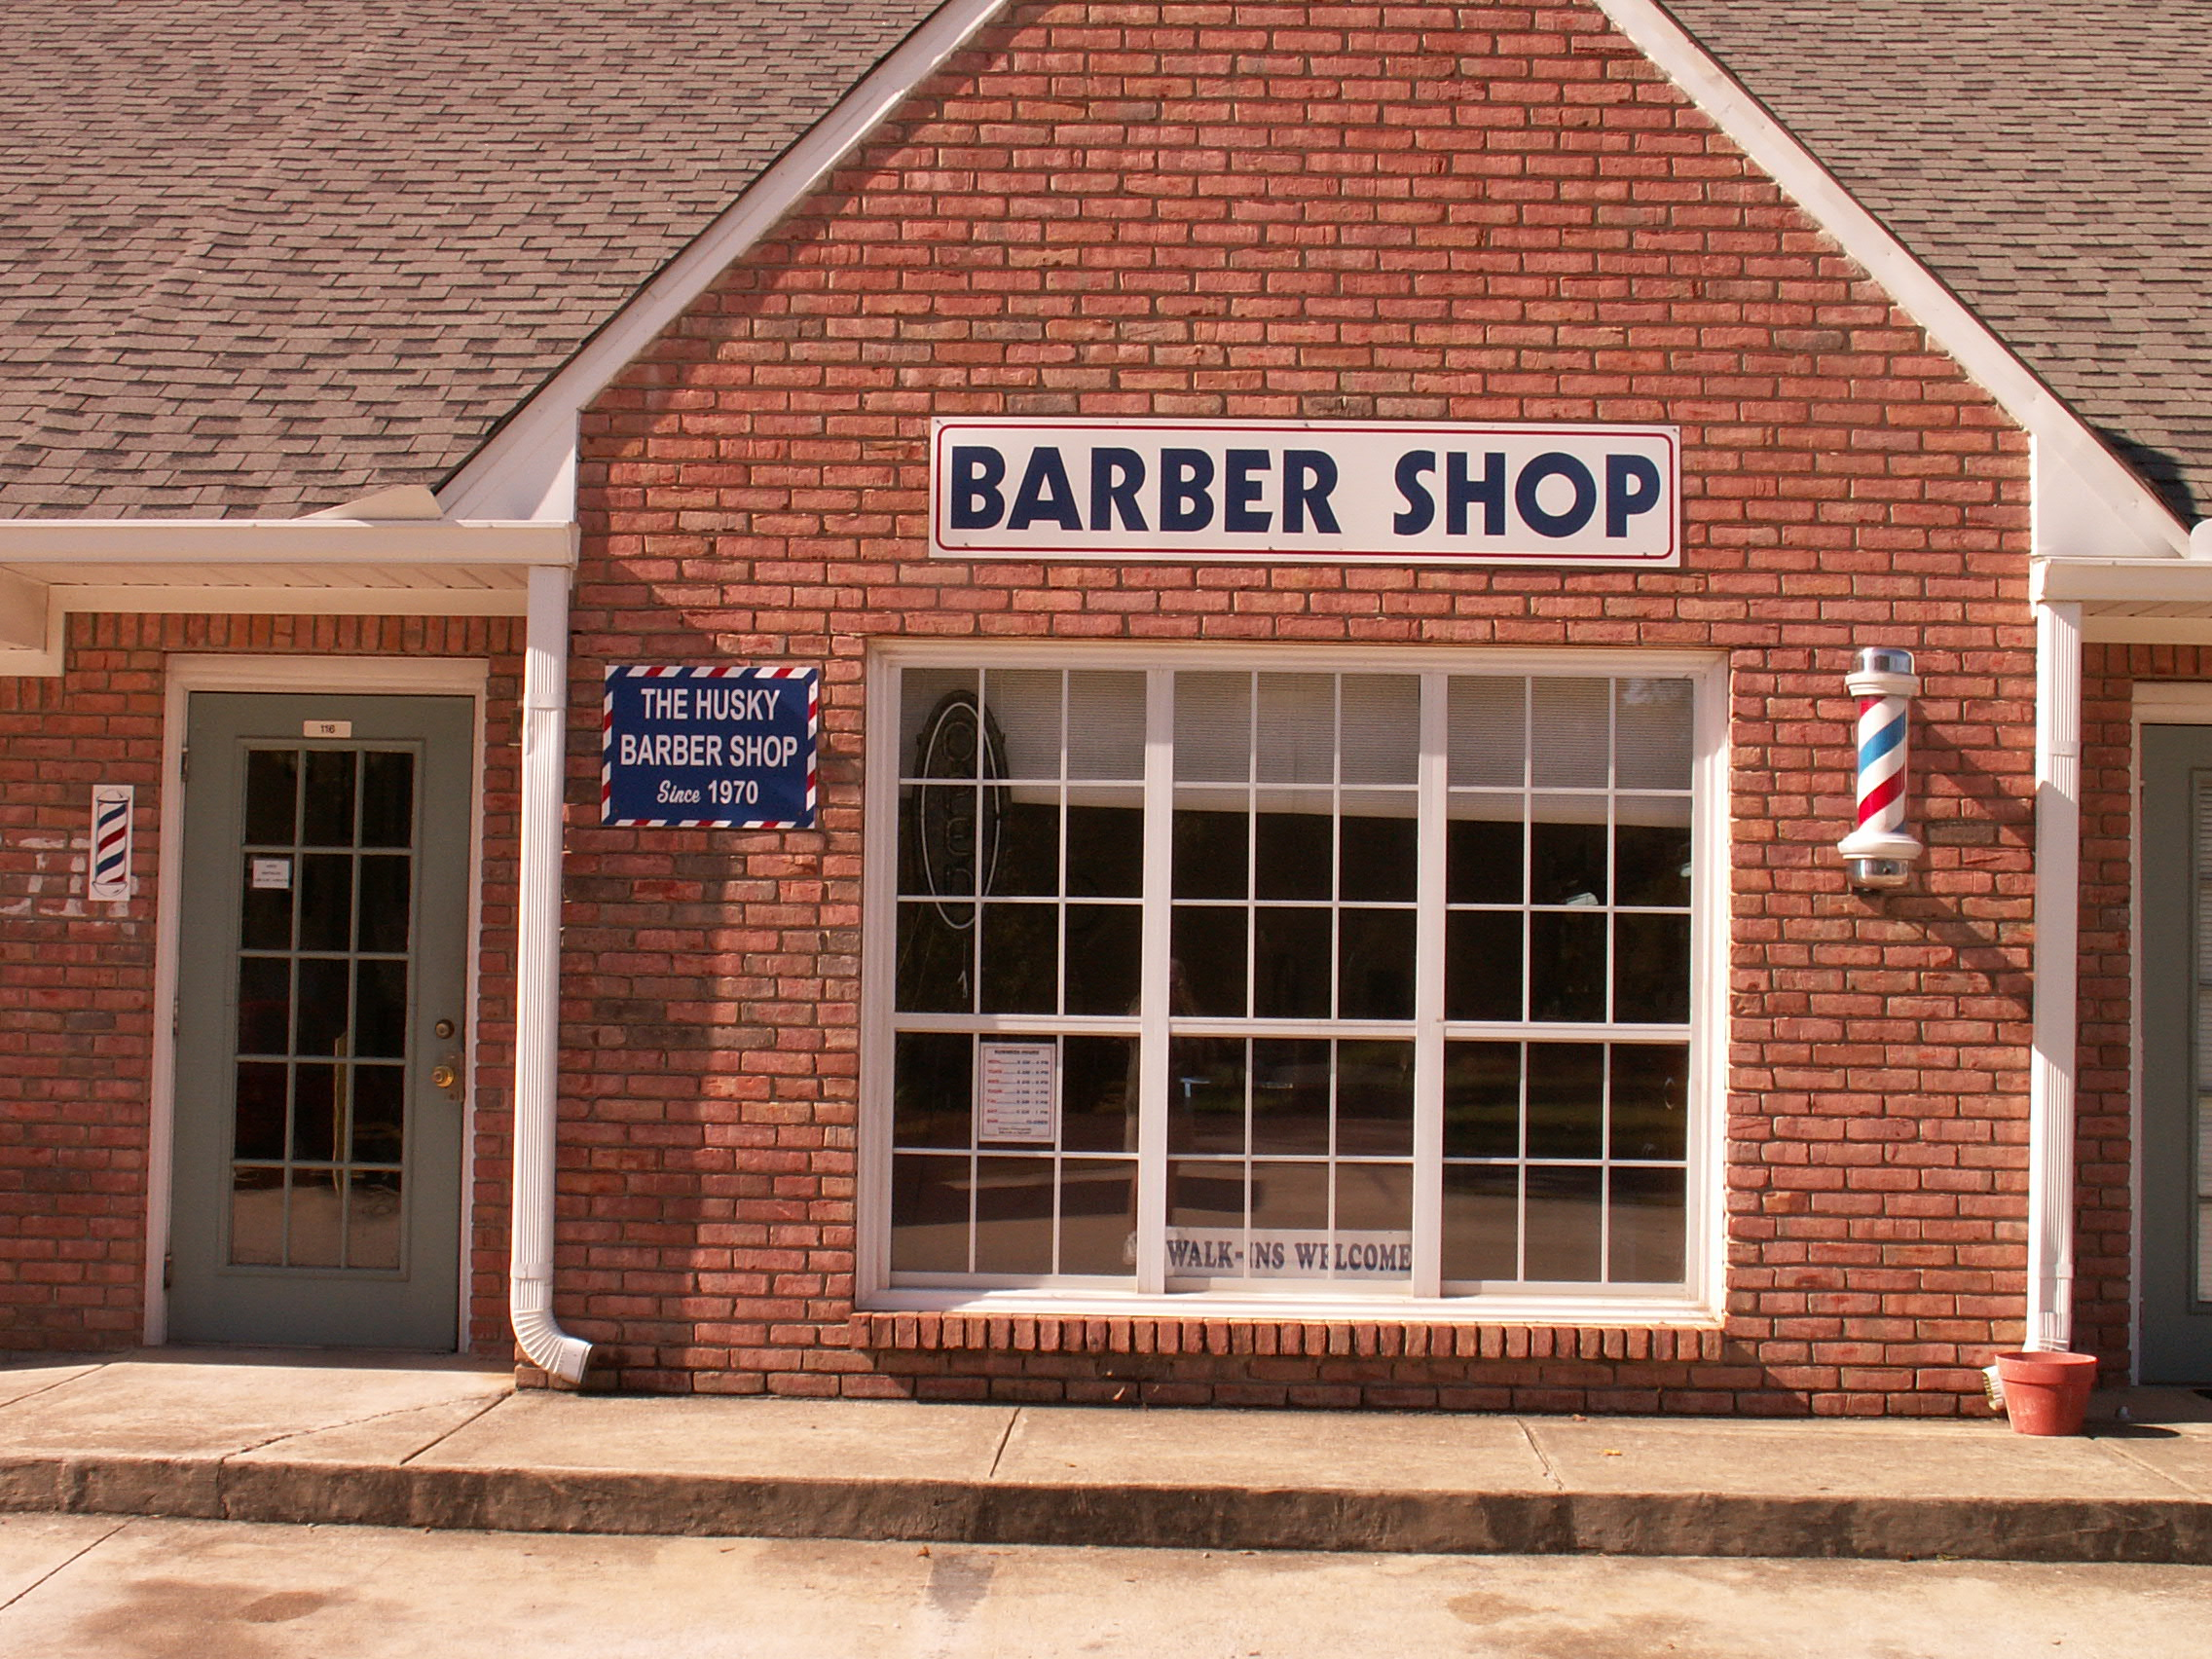 After a half-century of haircuts, The Husky Barbershop prepares to close